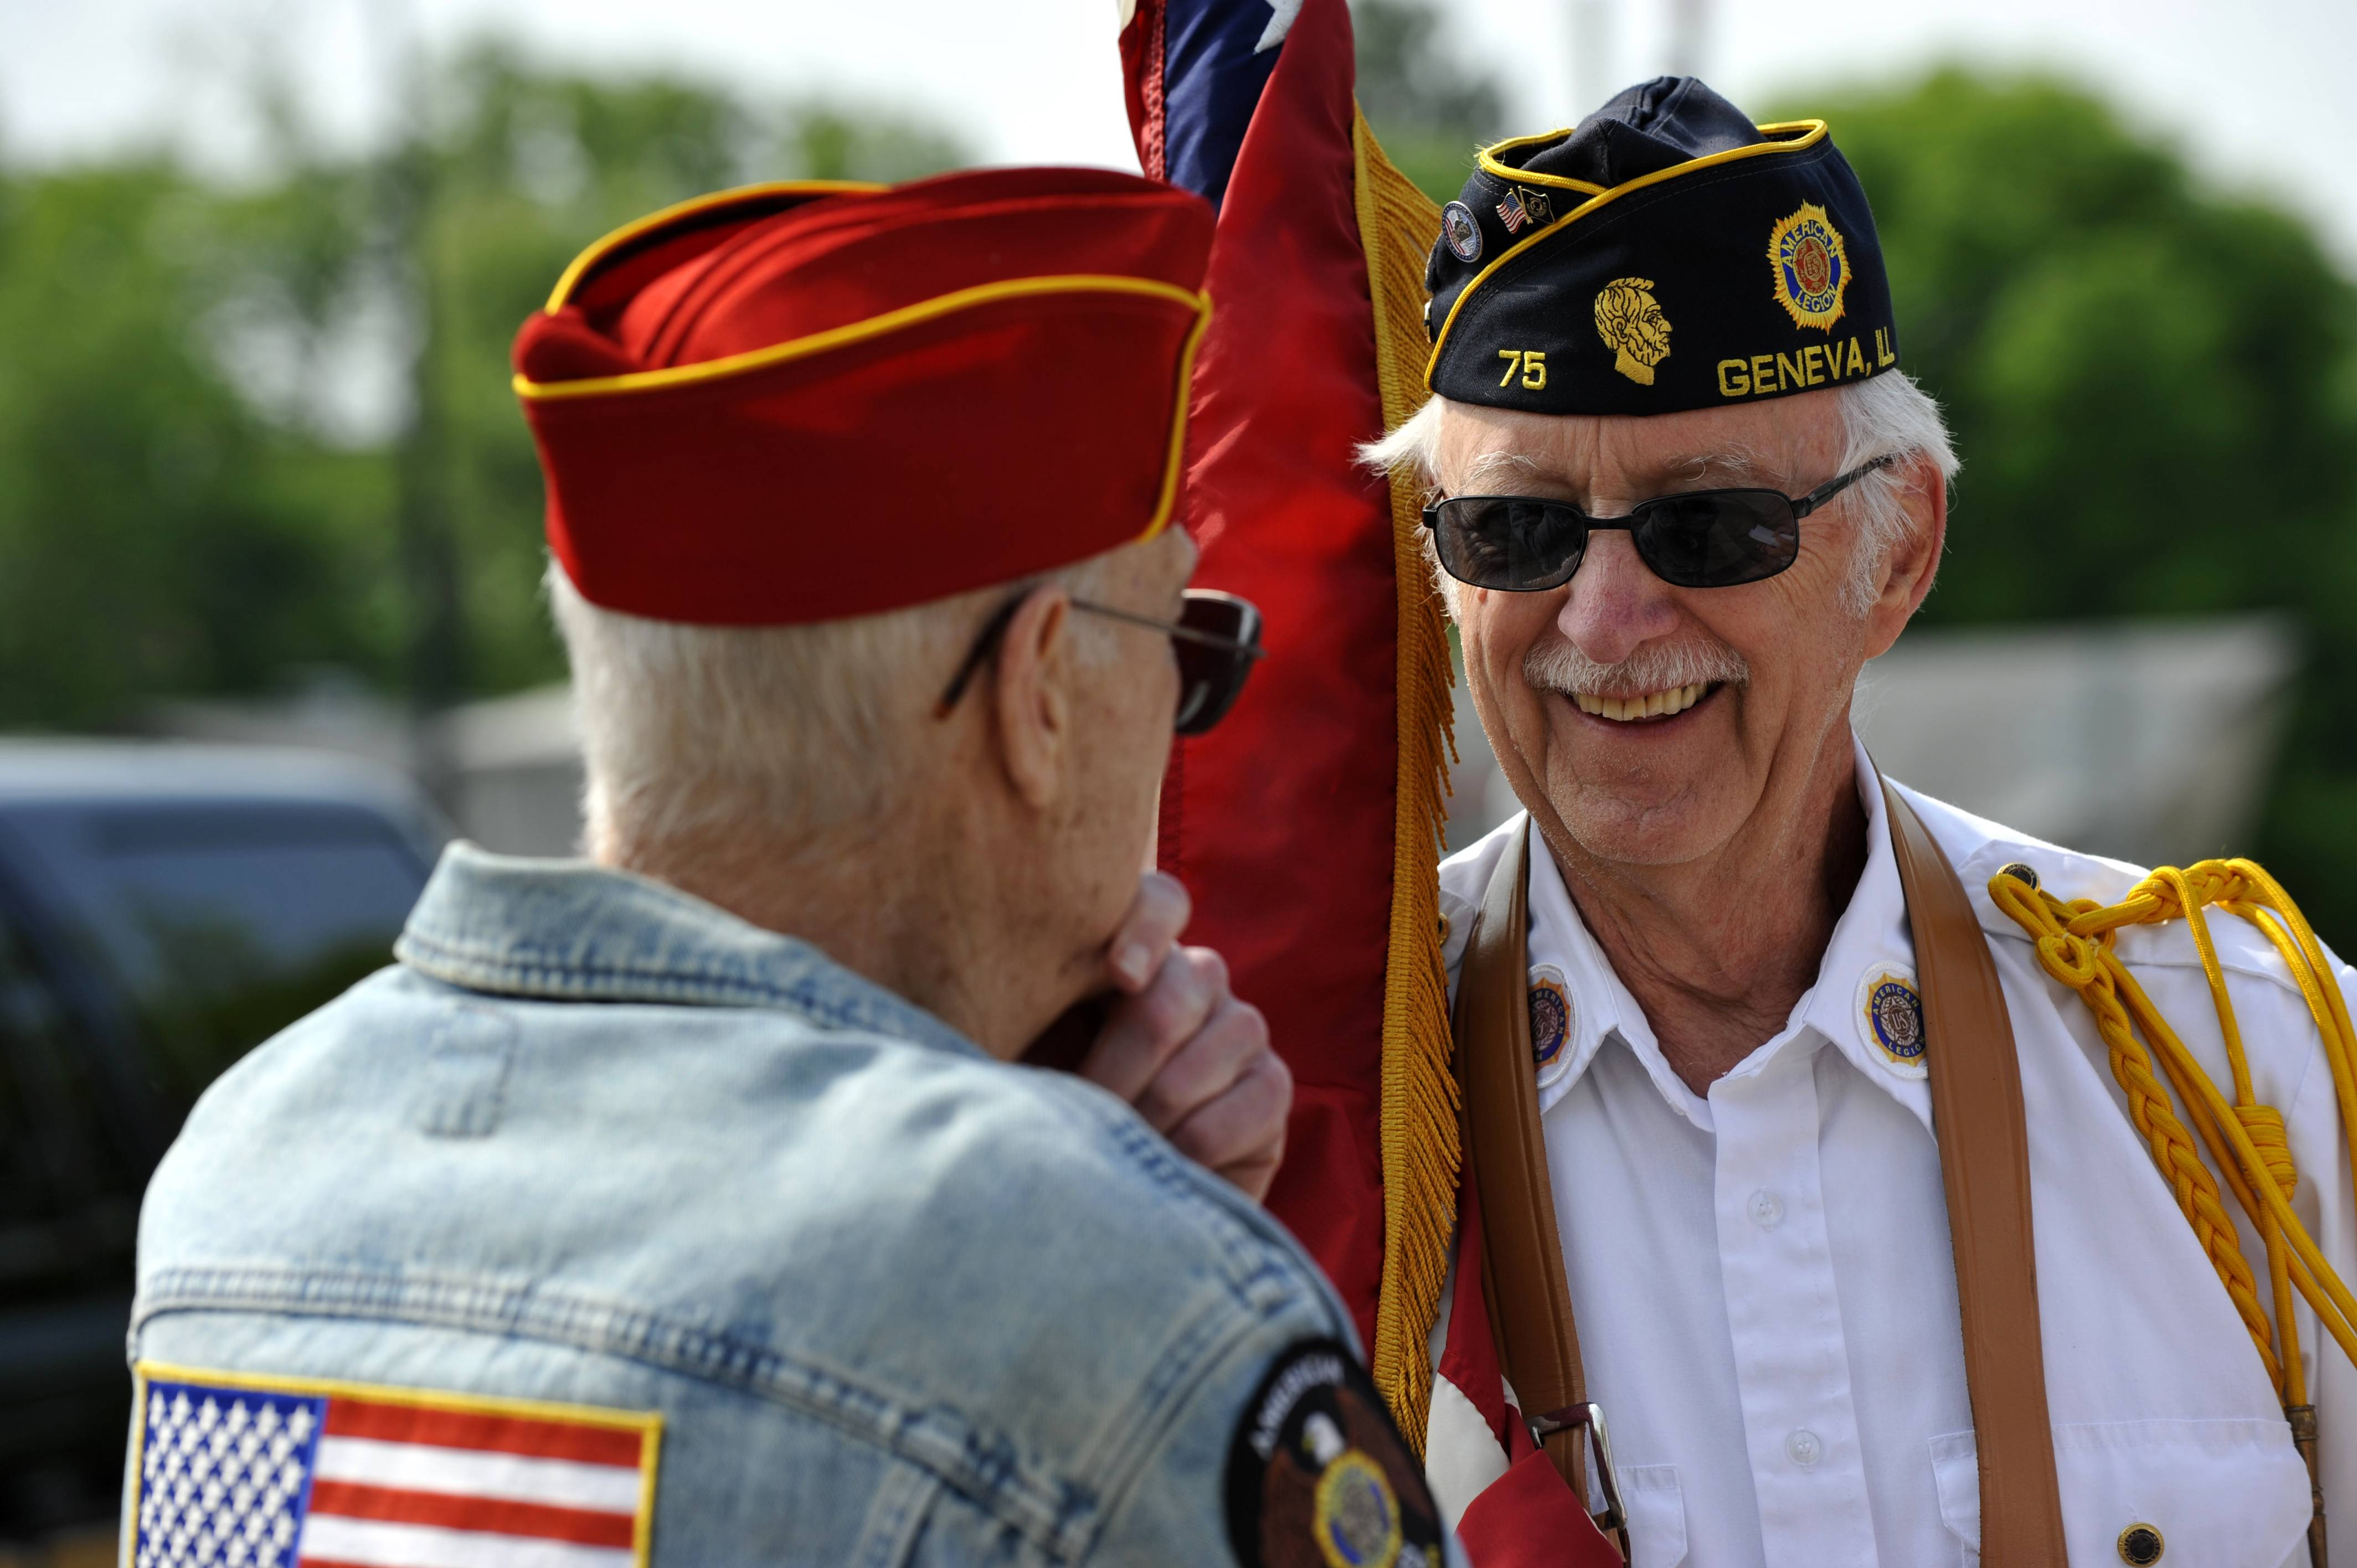 David Pierson of Geneva, left, speaks with Leonard Pietrusiewicz of Geneva before the start of the Geneva Memorial Day Parade on Monday. Pierson is a Veteran of the Korean War and Pietrusiewicz served in the air force from 1954-1957.